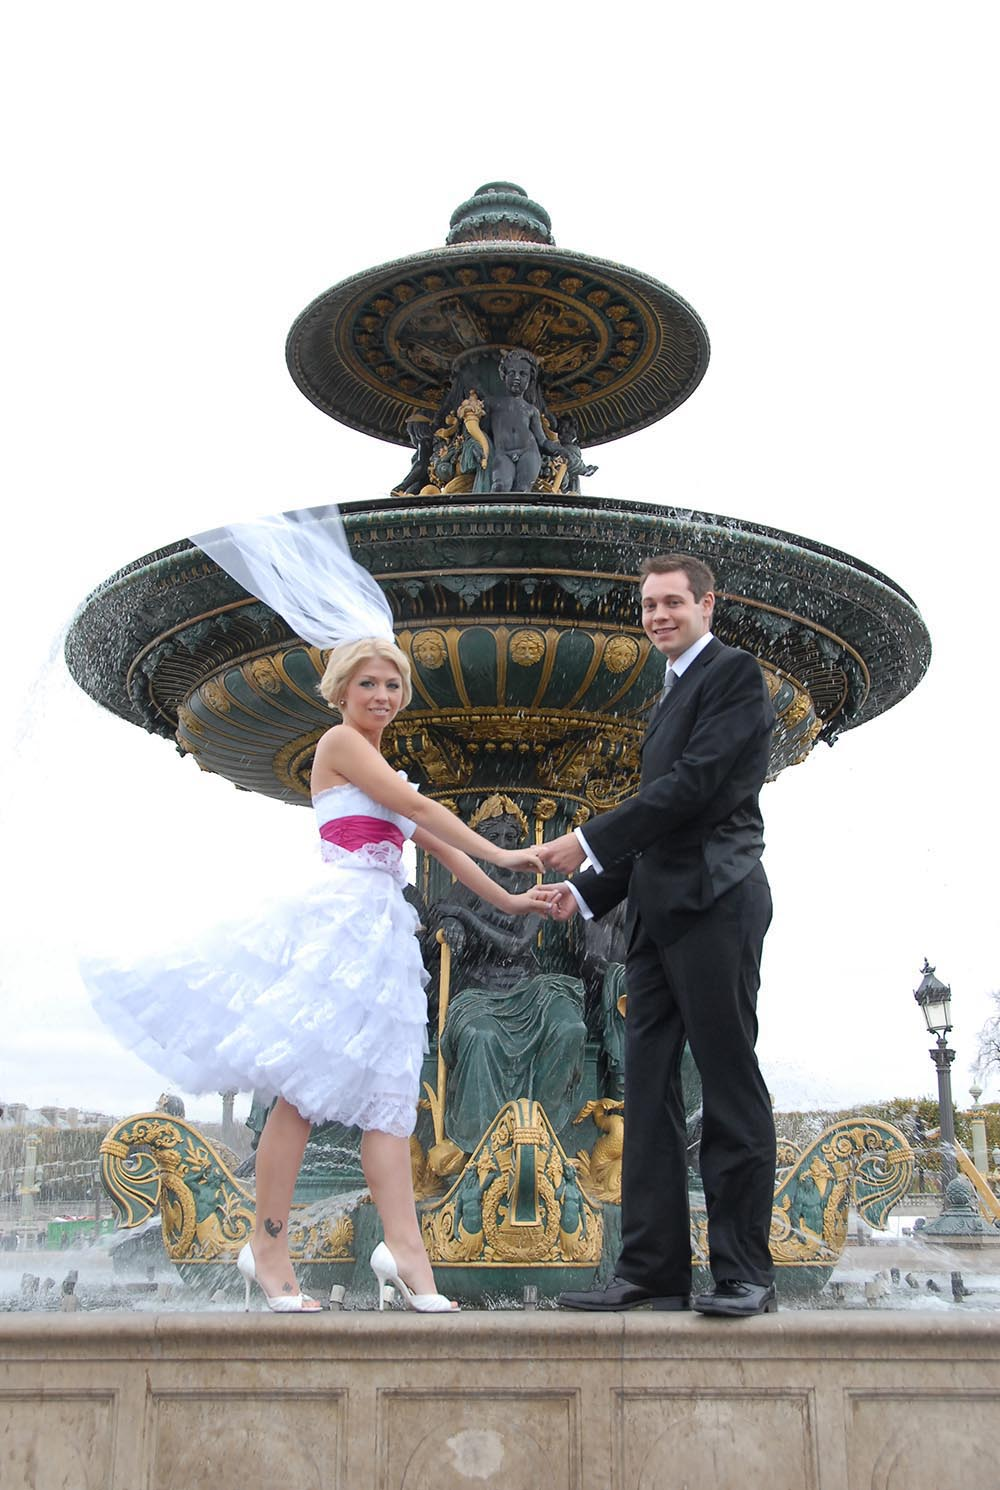 Couple de maries sur la fontaine place de la Concorde, Paris